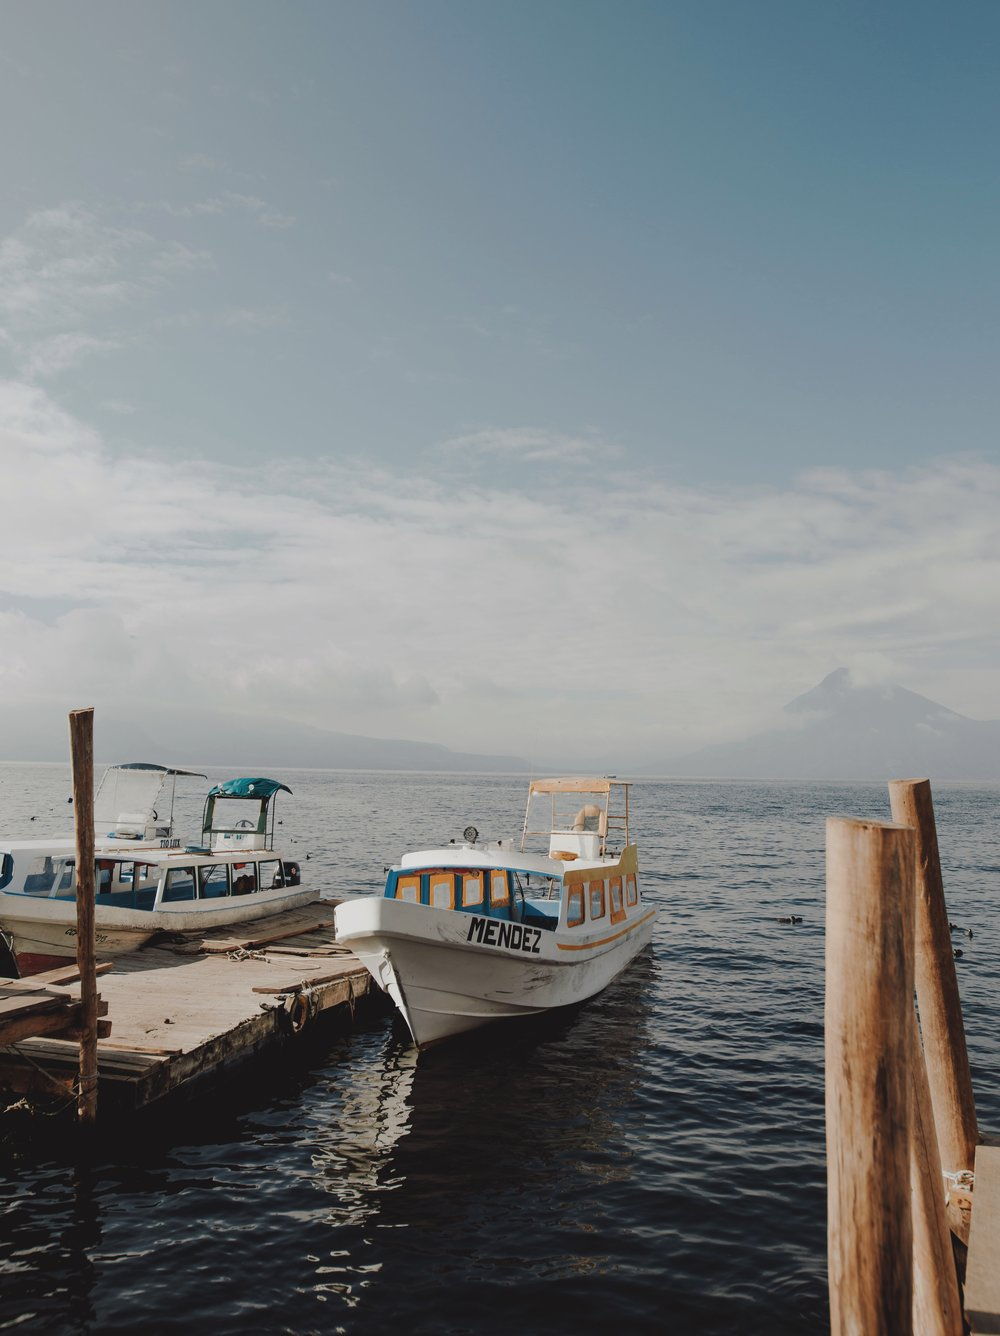 on our second day at Lake Atitlán , we took a boat in Panajachel, where we ate breakfast at a local cafe, went to the artisan market, and took in the beautiful sunshine, colors, and textures of the beautiful town.